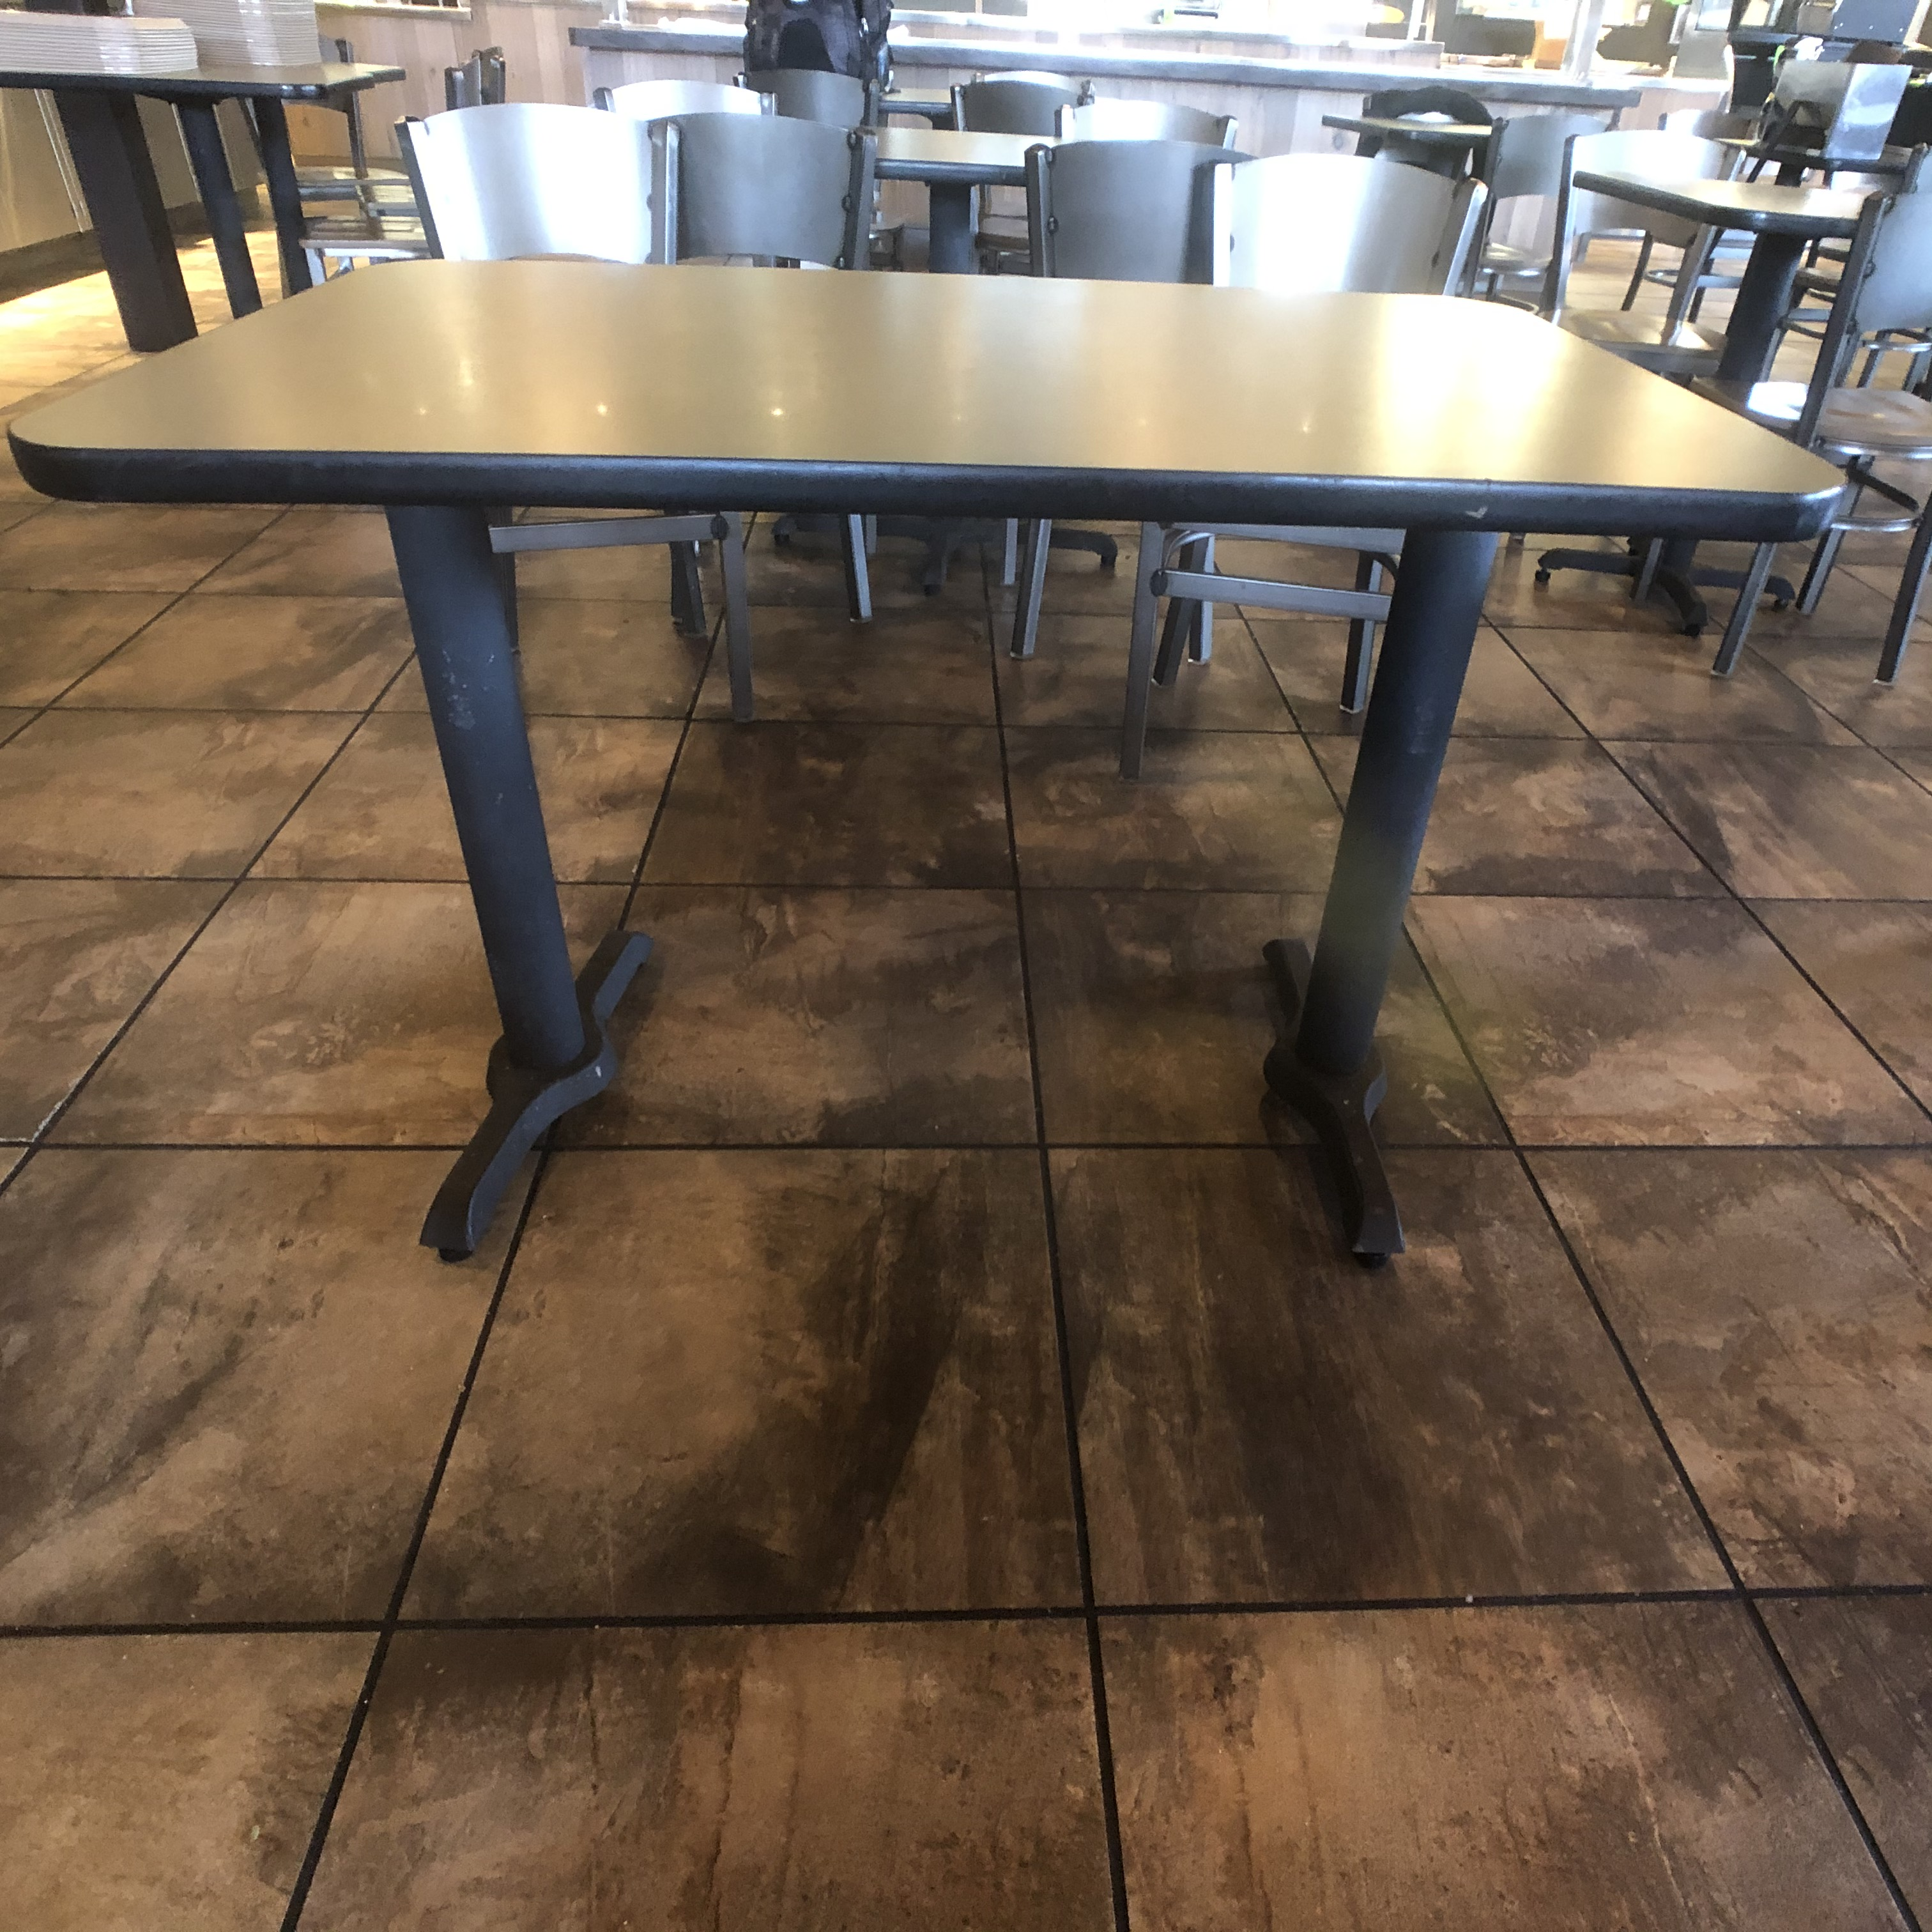 "(6) 4-Person Tables with (24) Walsh Simmons Seating Chairs, Approx. 44"" L x 28"" W - Image 3 of 5"